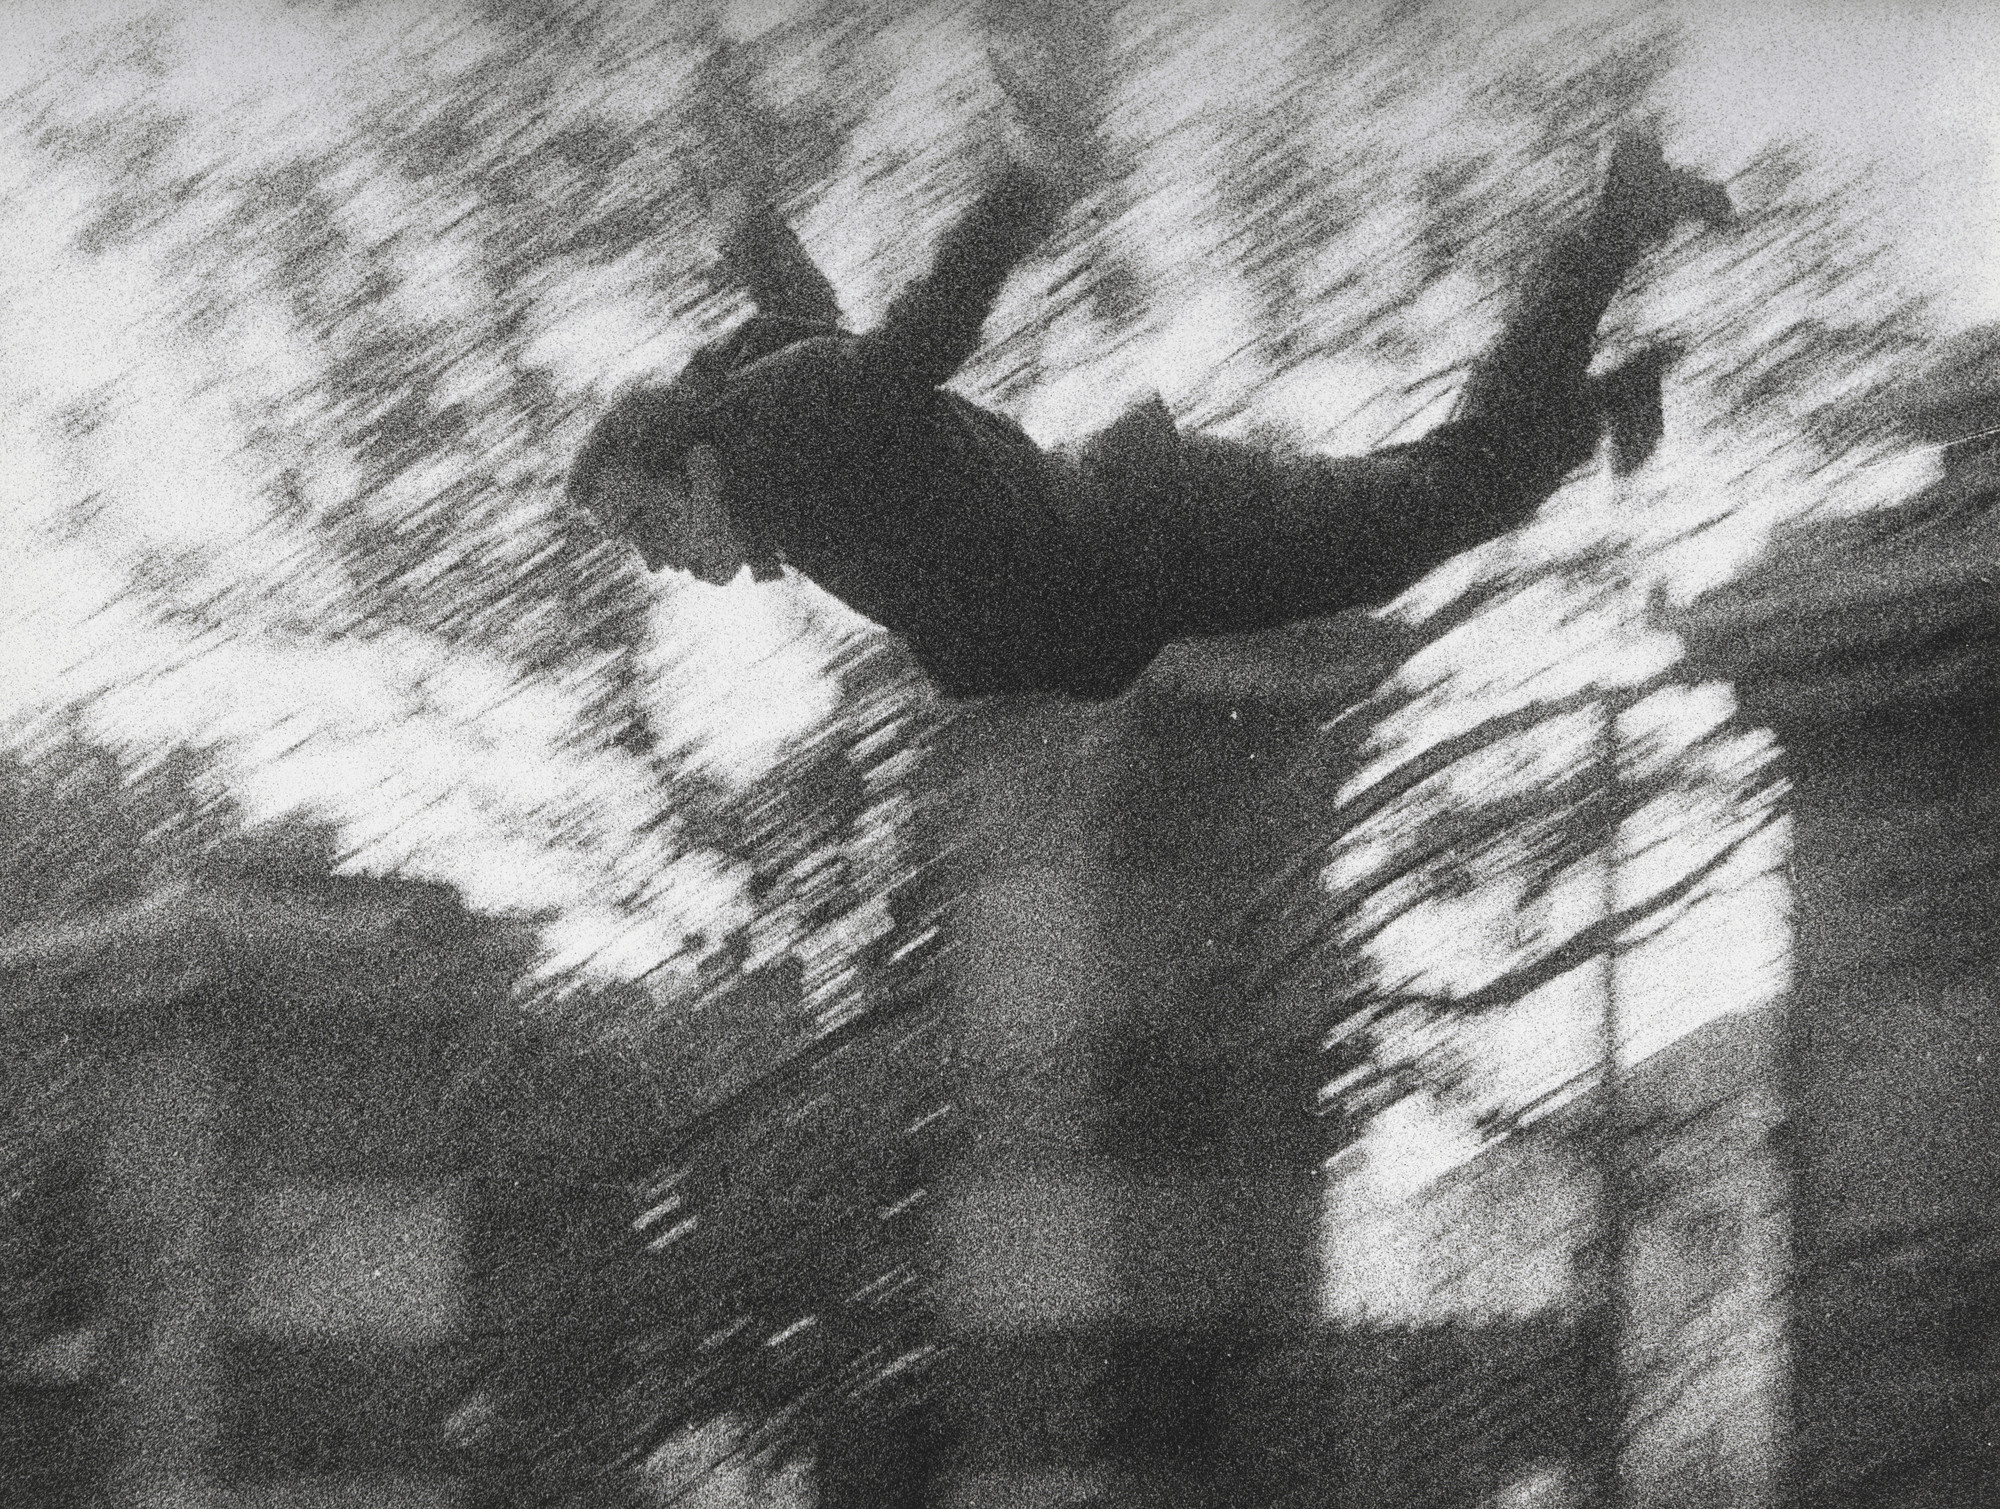 Yves Klein, János Kender, Harry Shunk. Leap into the Void. 1960